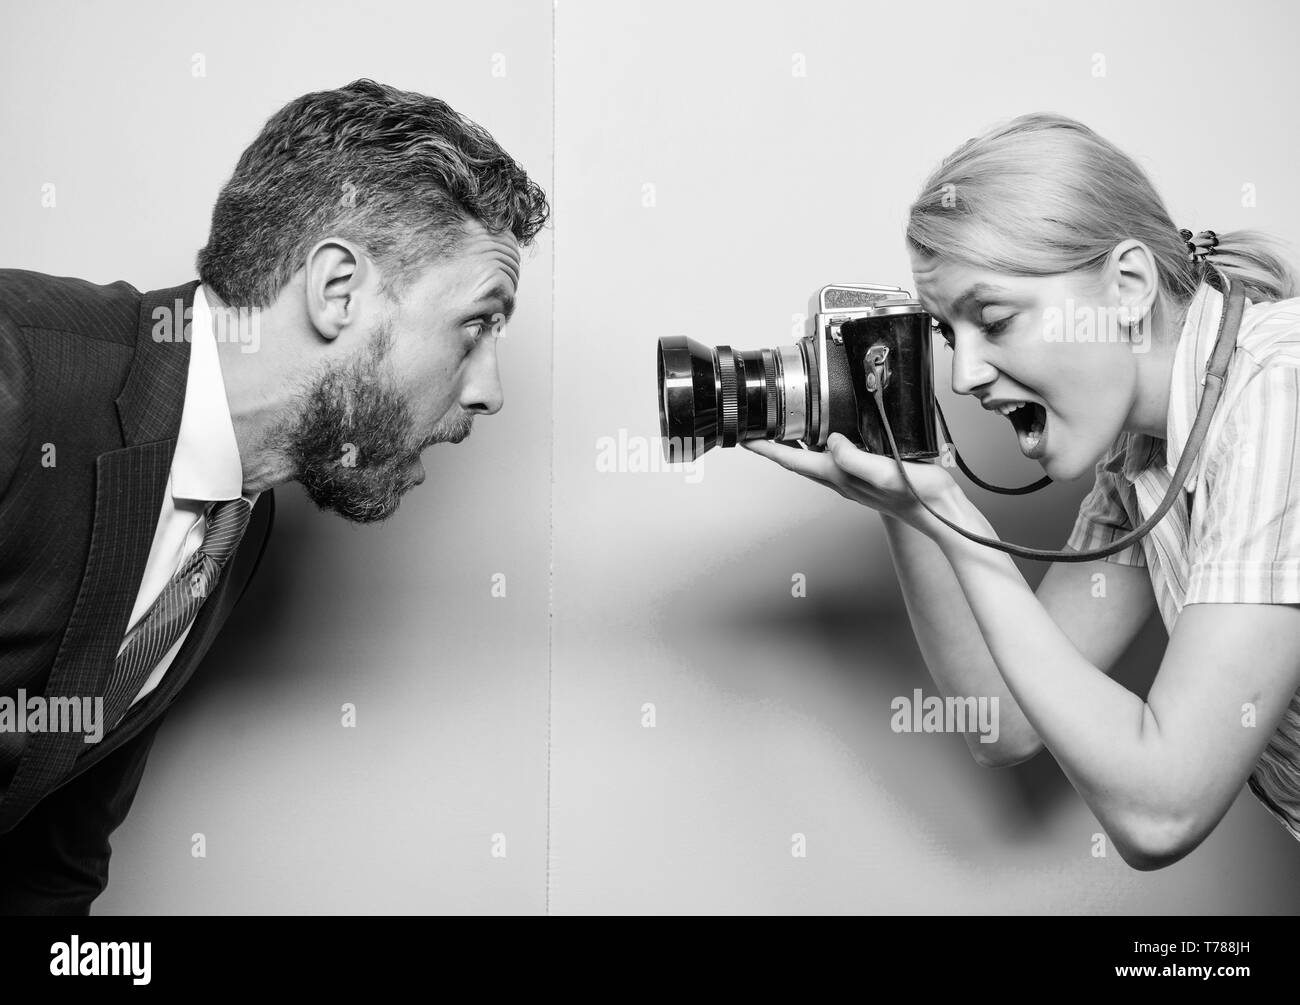 Emotions through photos. Businessman posing in front of female photographer. Pretty woman using professional camera. Photographer shooting male model in studio. Fashion shooting in photo studio. - Stock Image